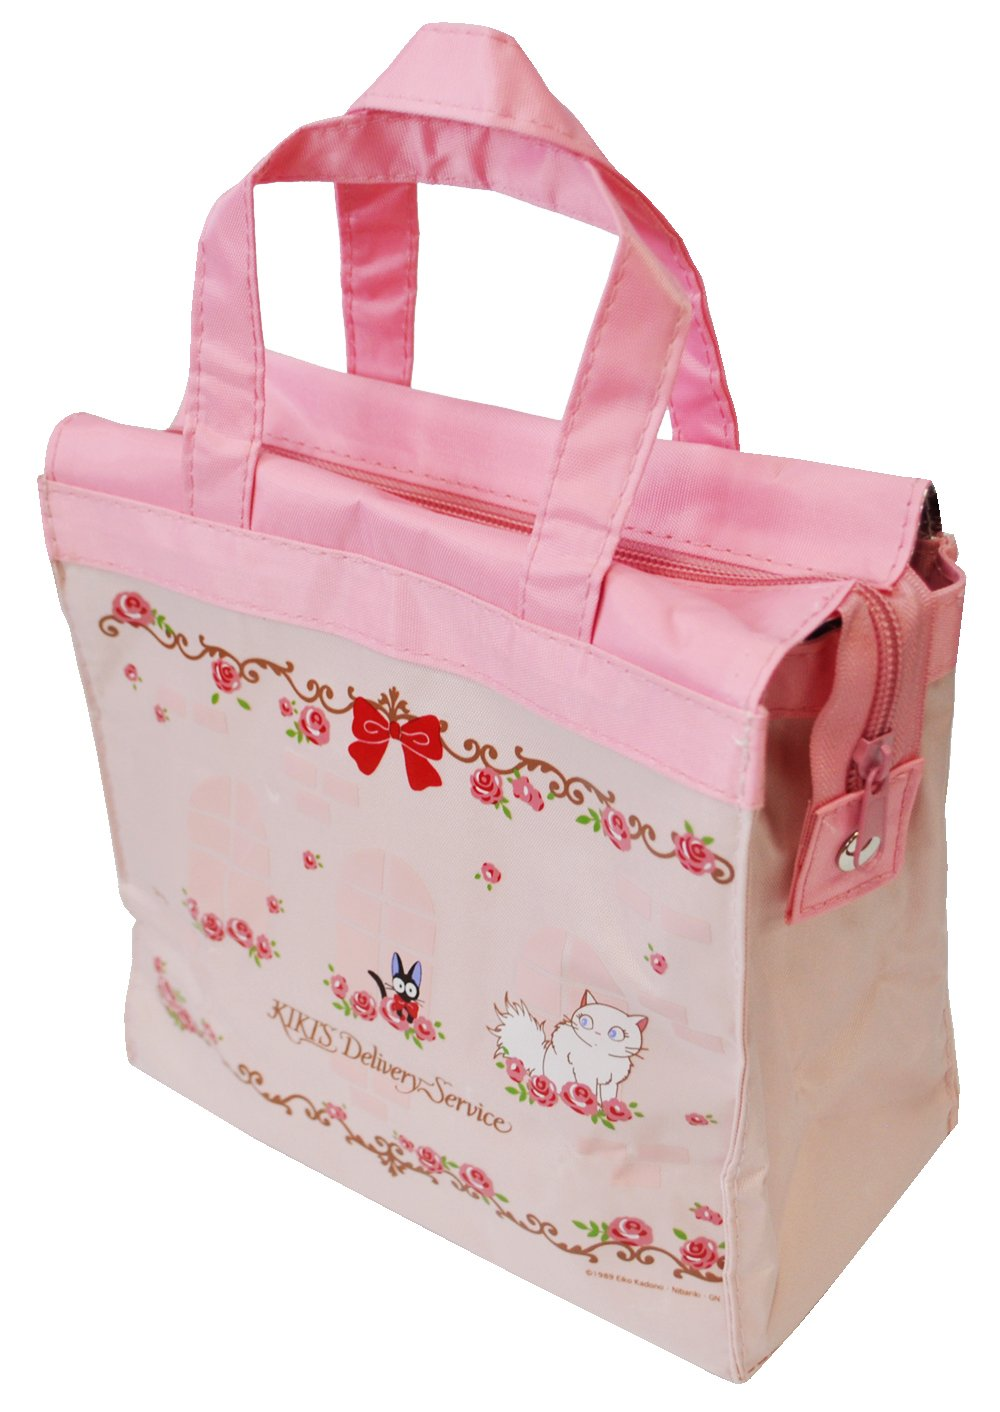 Kiki's Delivery Service (Rose) Insulated lunch bag UBC1 (japan import) by Skater